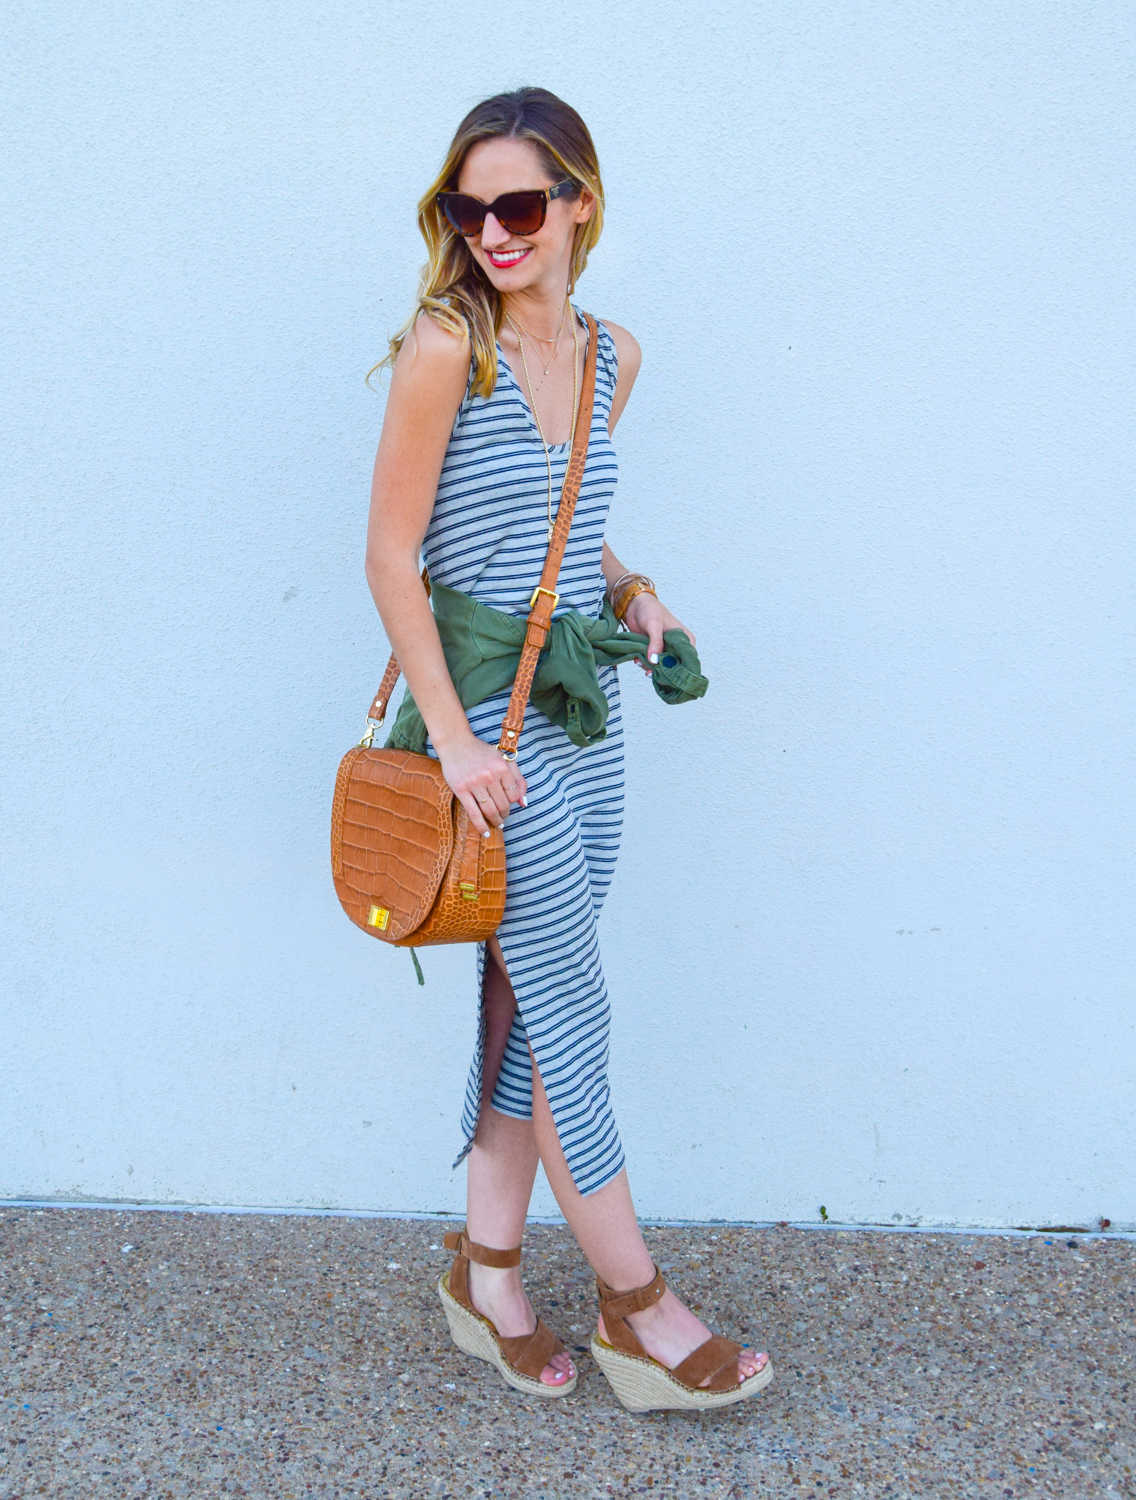 livvyland-blog-olivia-watson-austin-texas-fashion-blogger-striped-midi-dress-green-utility-jacket-brahmin-sonny-crossbody-handbag-prada-cat-eye-sunglasses-casual-outfit-11